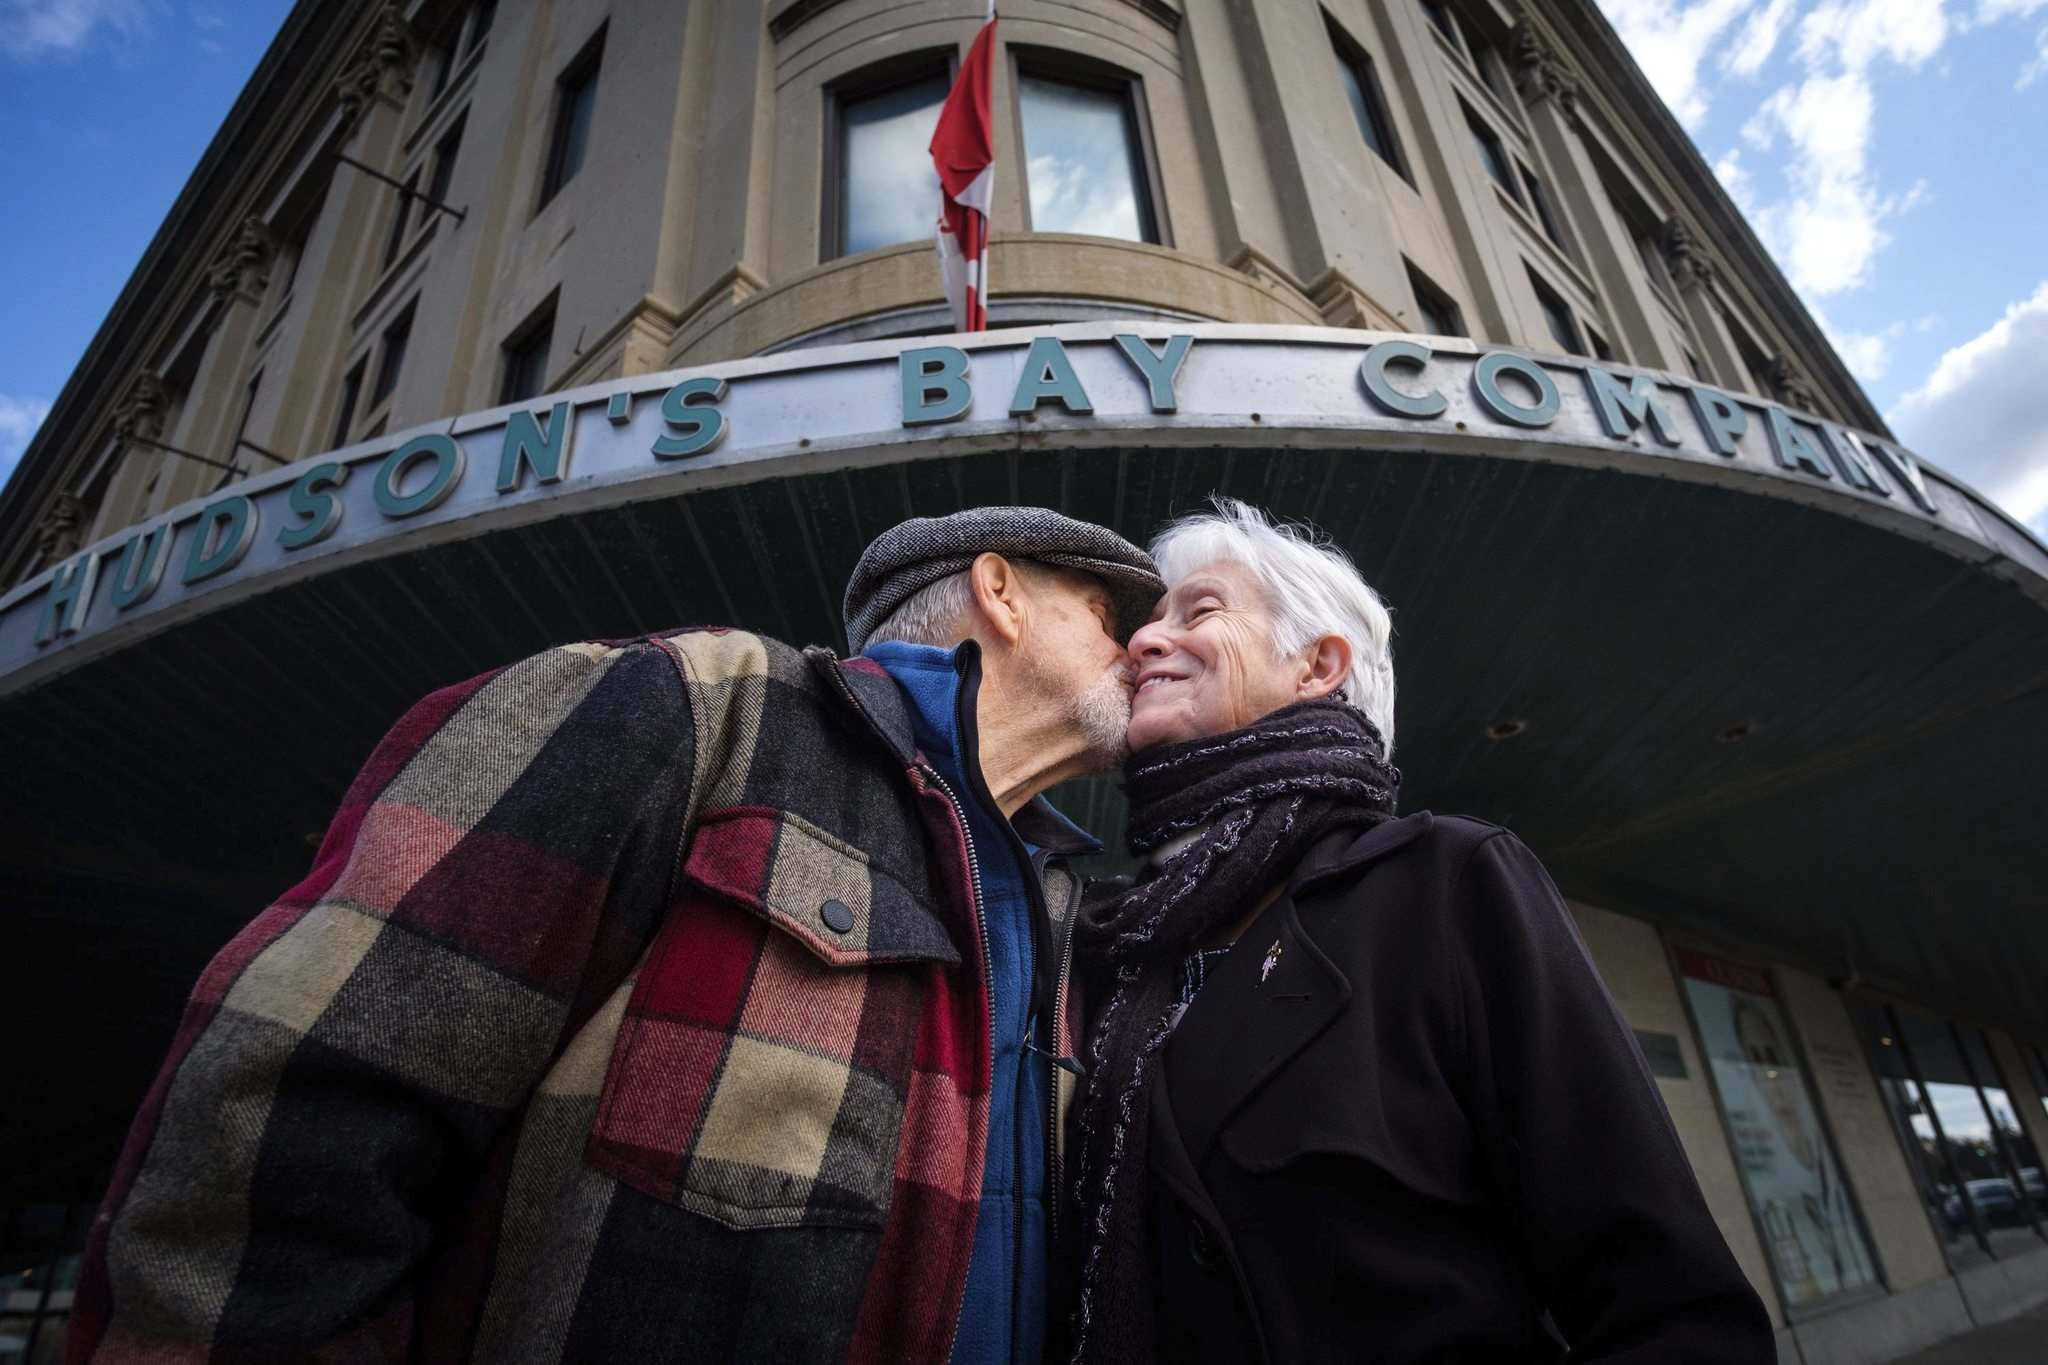 Daniel Crump / Winnipeg Free Press.</p><p>David and Elizabeth Jasysyn celebrated their wedding anniversary Saturday by visiting Winnipeg's downtown Bay store, the place David first summoned the courage to ask his wife of 39 years on a date.</p></p>